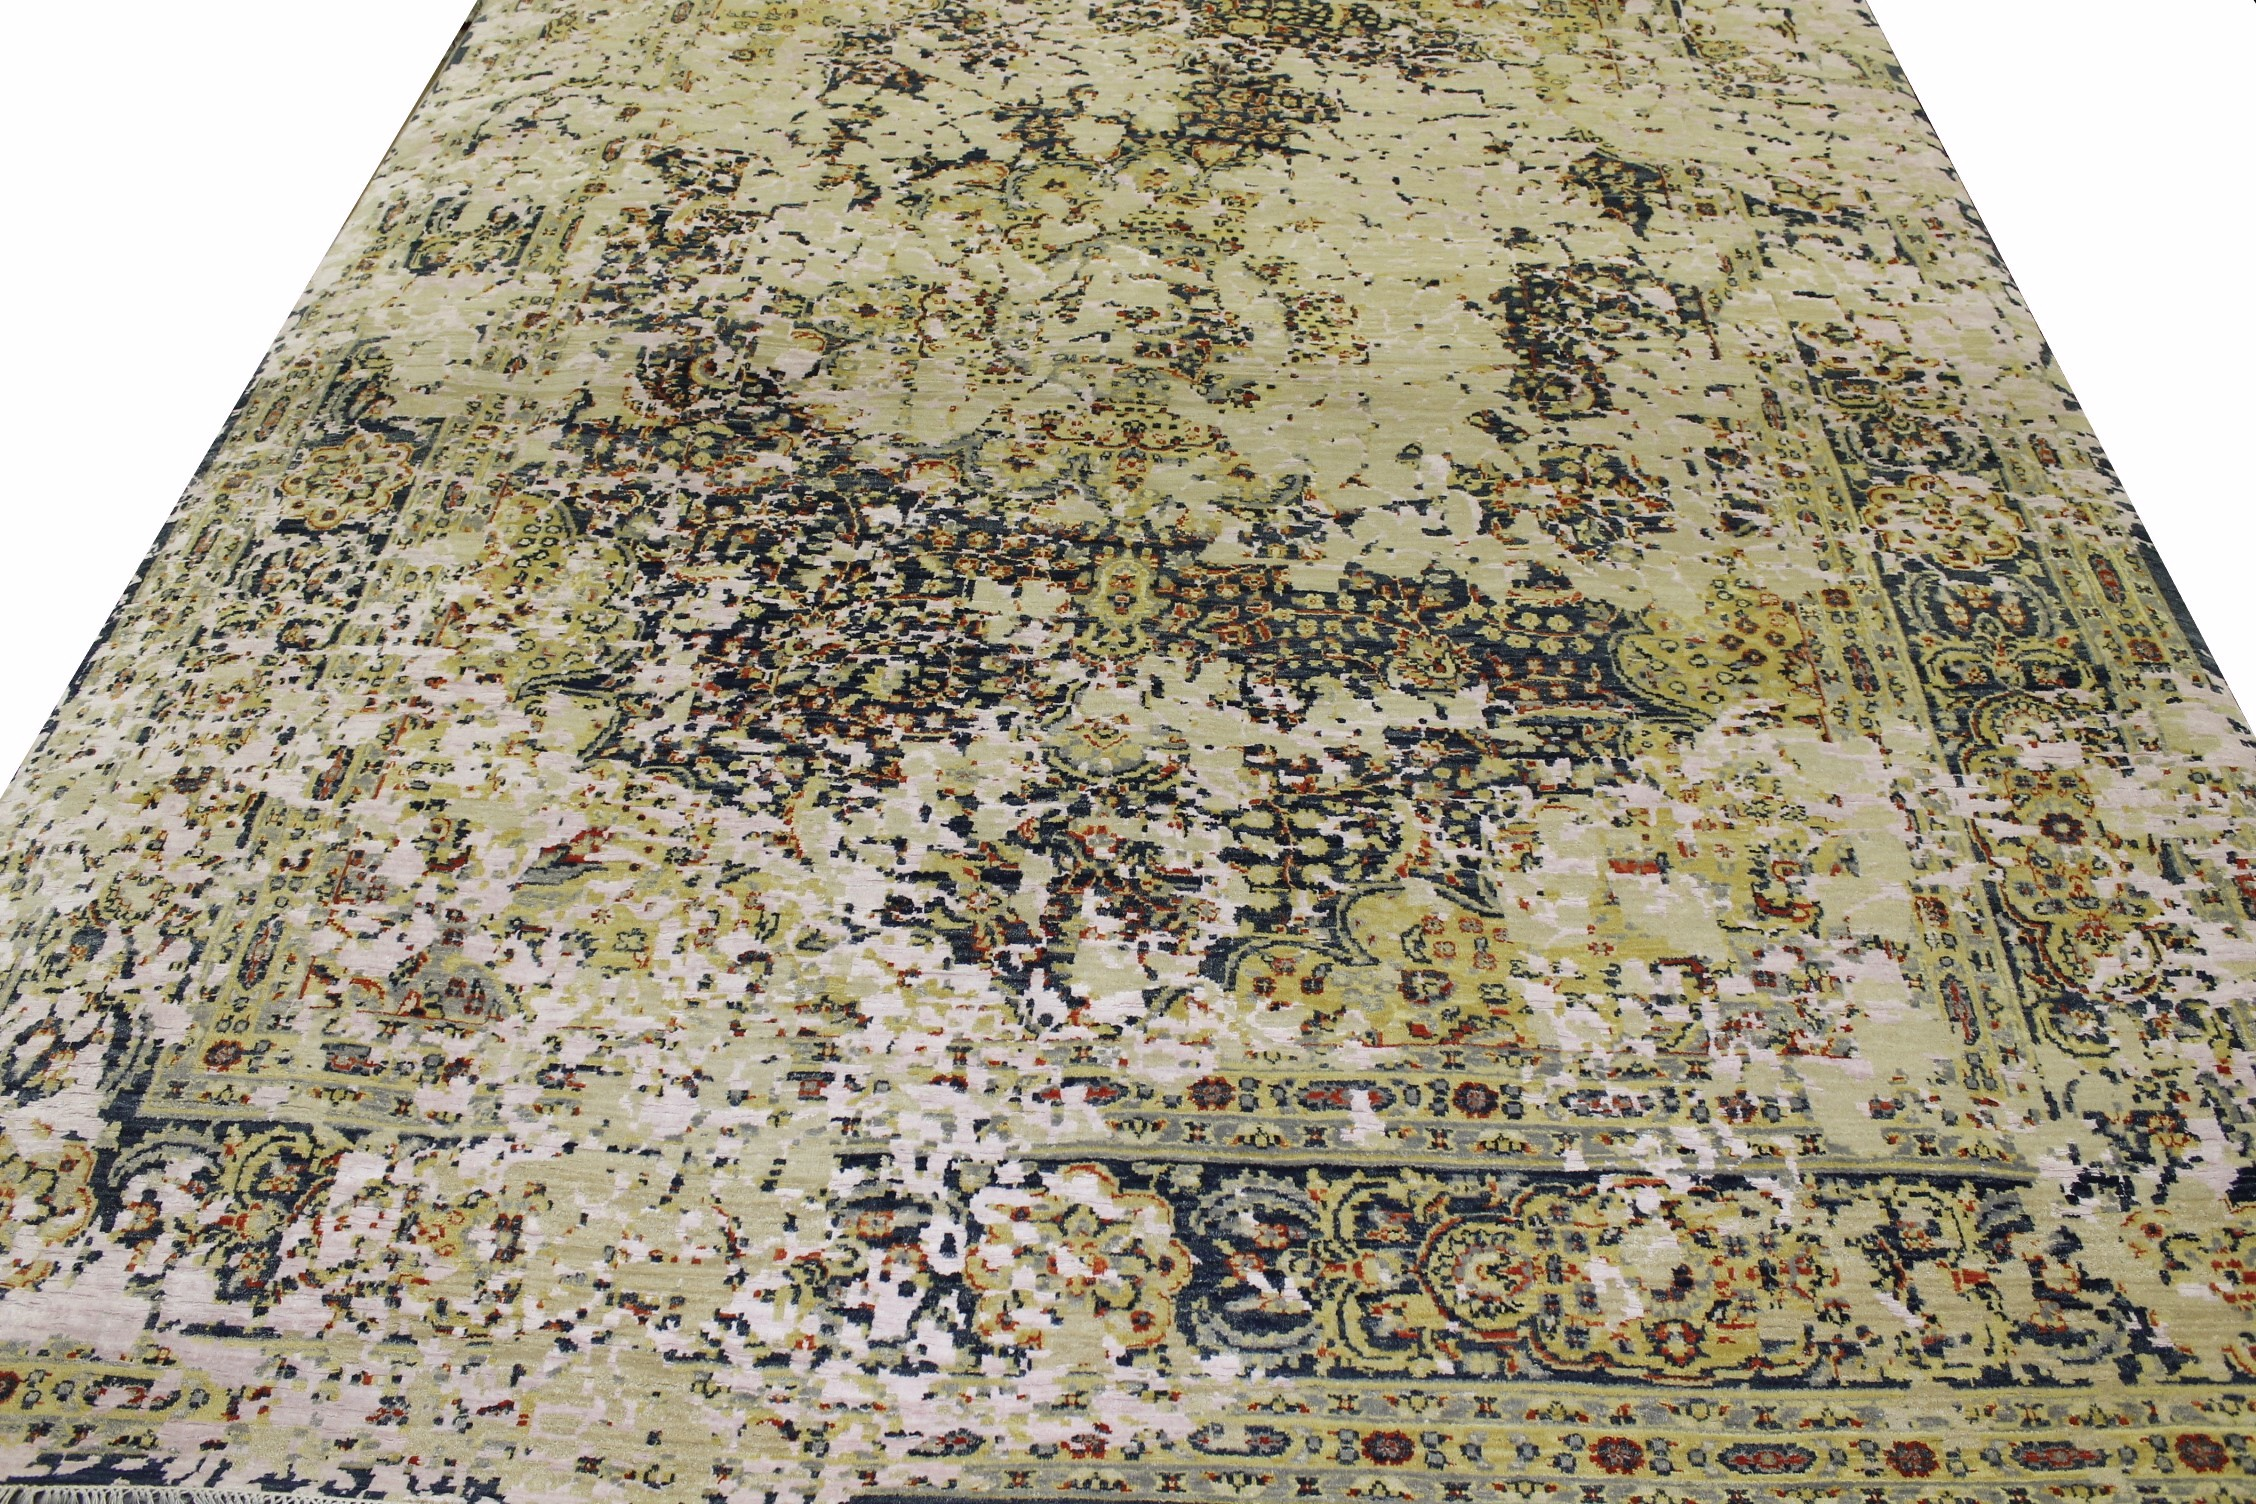 9x12 Contemporary Hand Knotted Wool Area Rug - MR022213